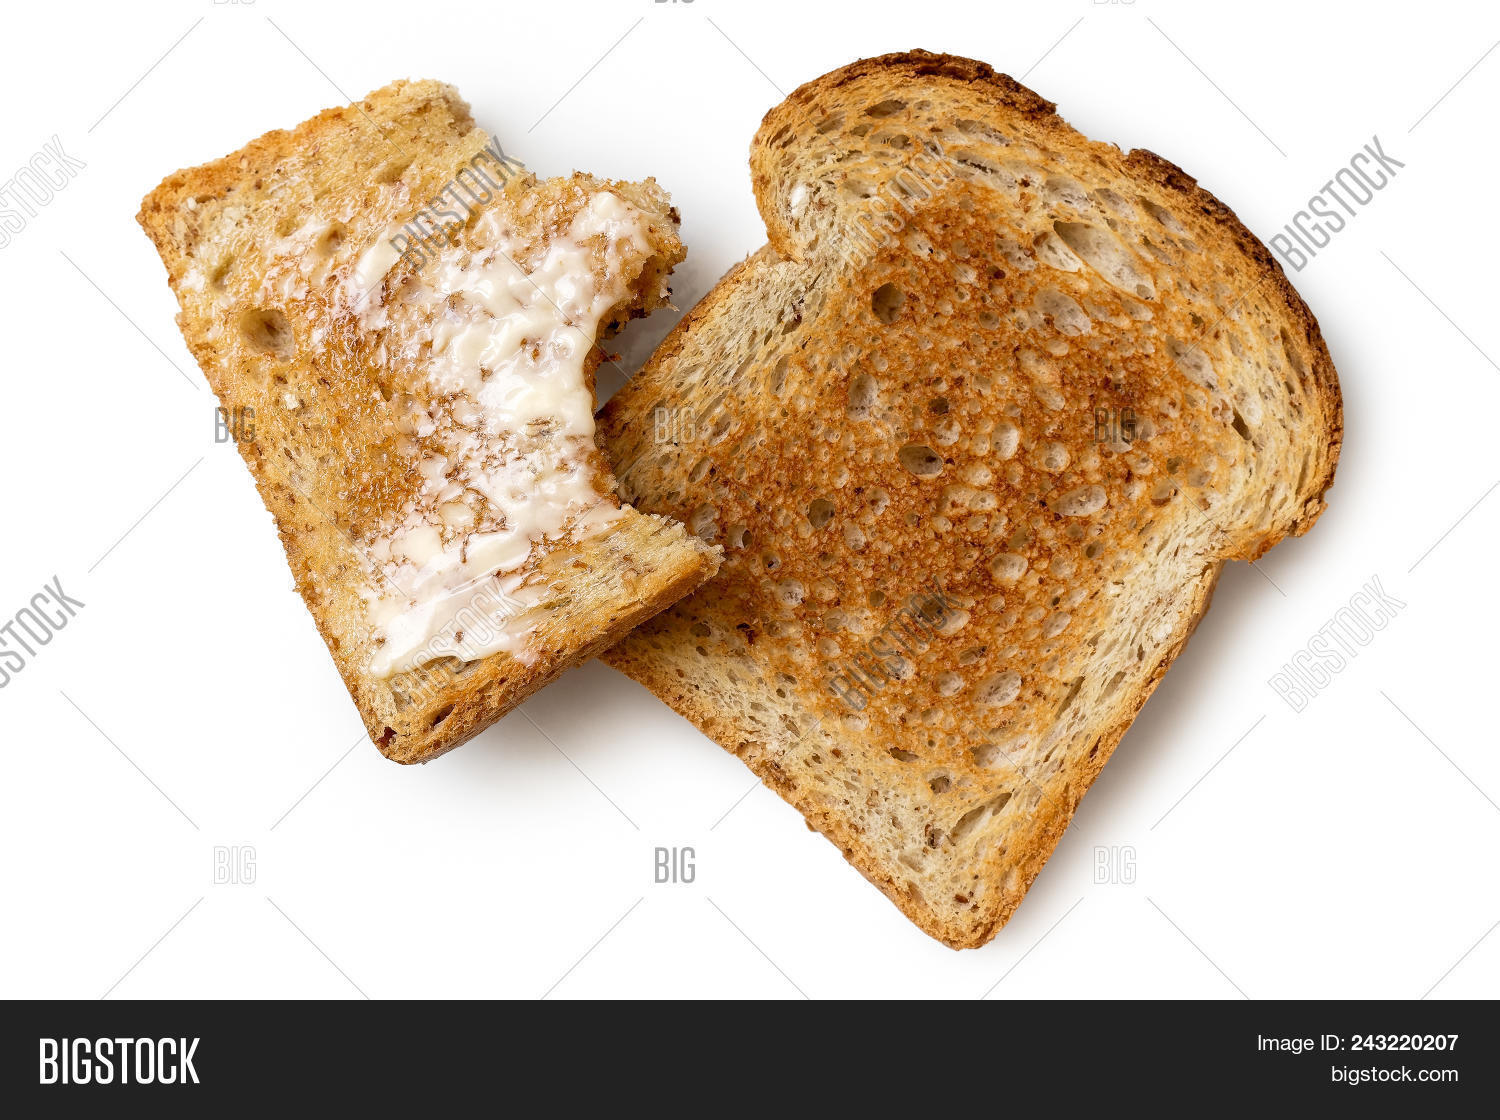 half eaten buttered image photo free trial bigstock